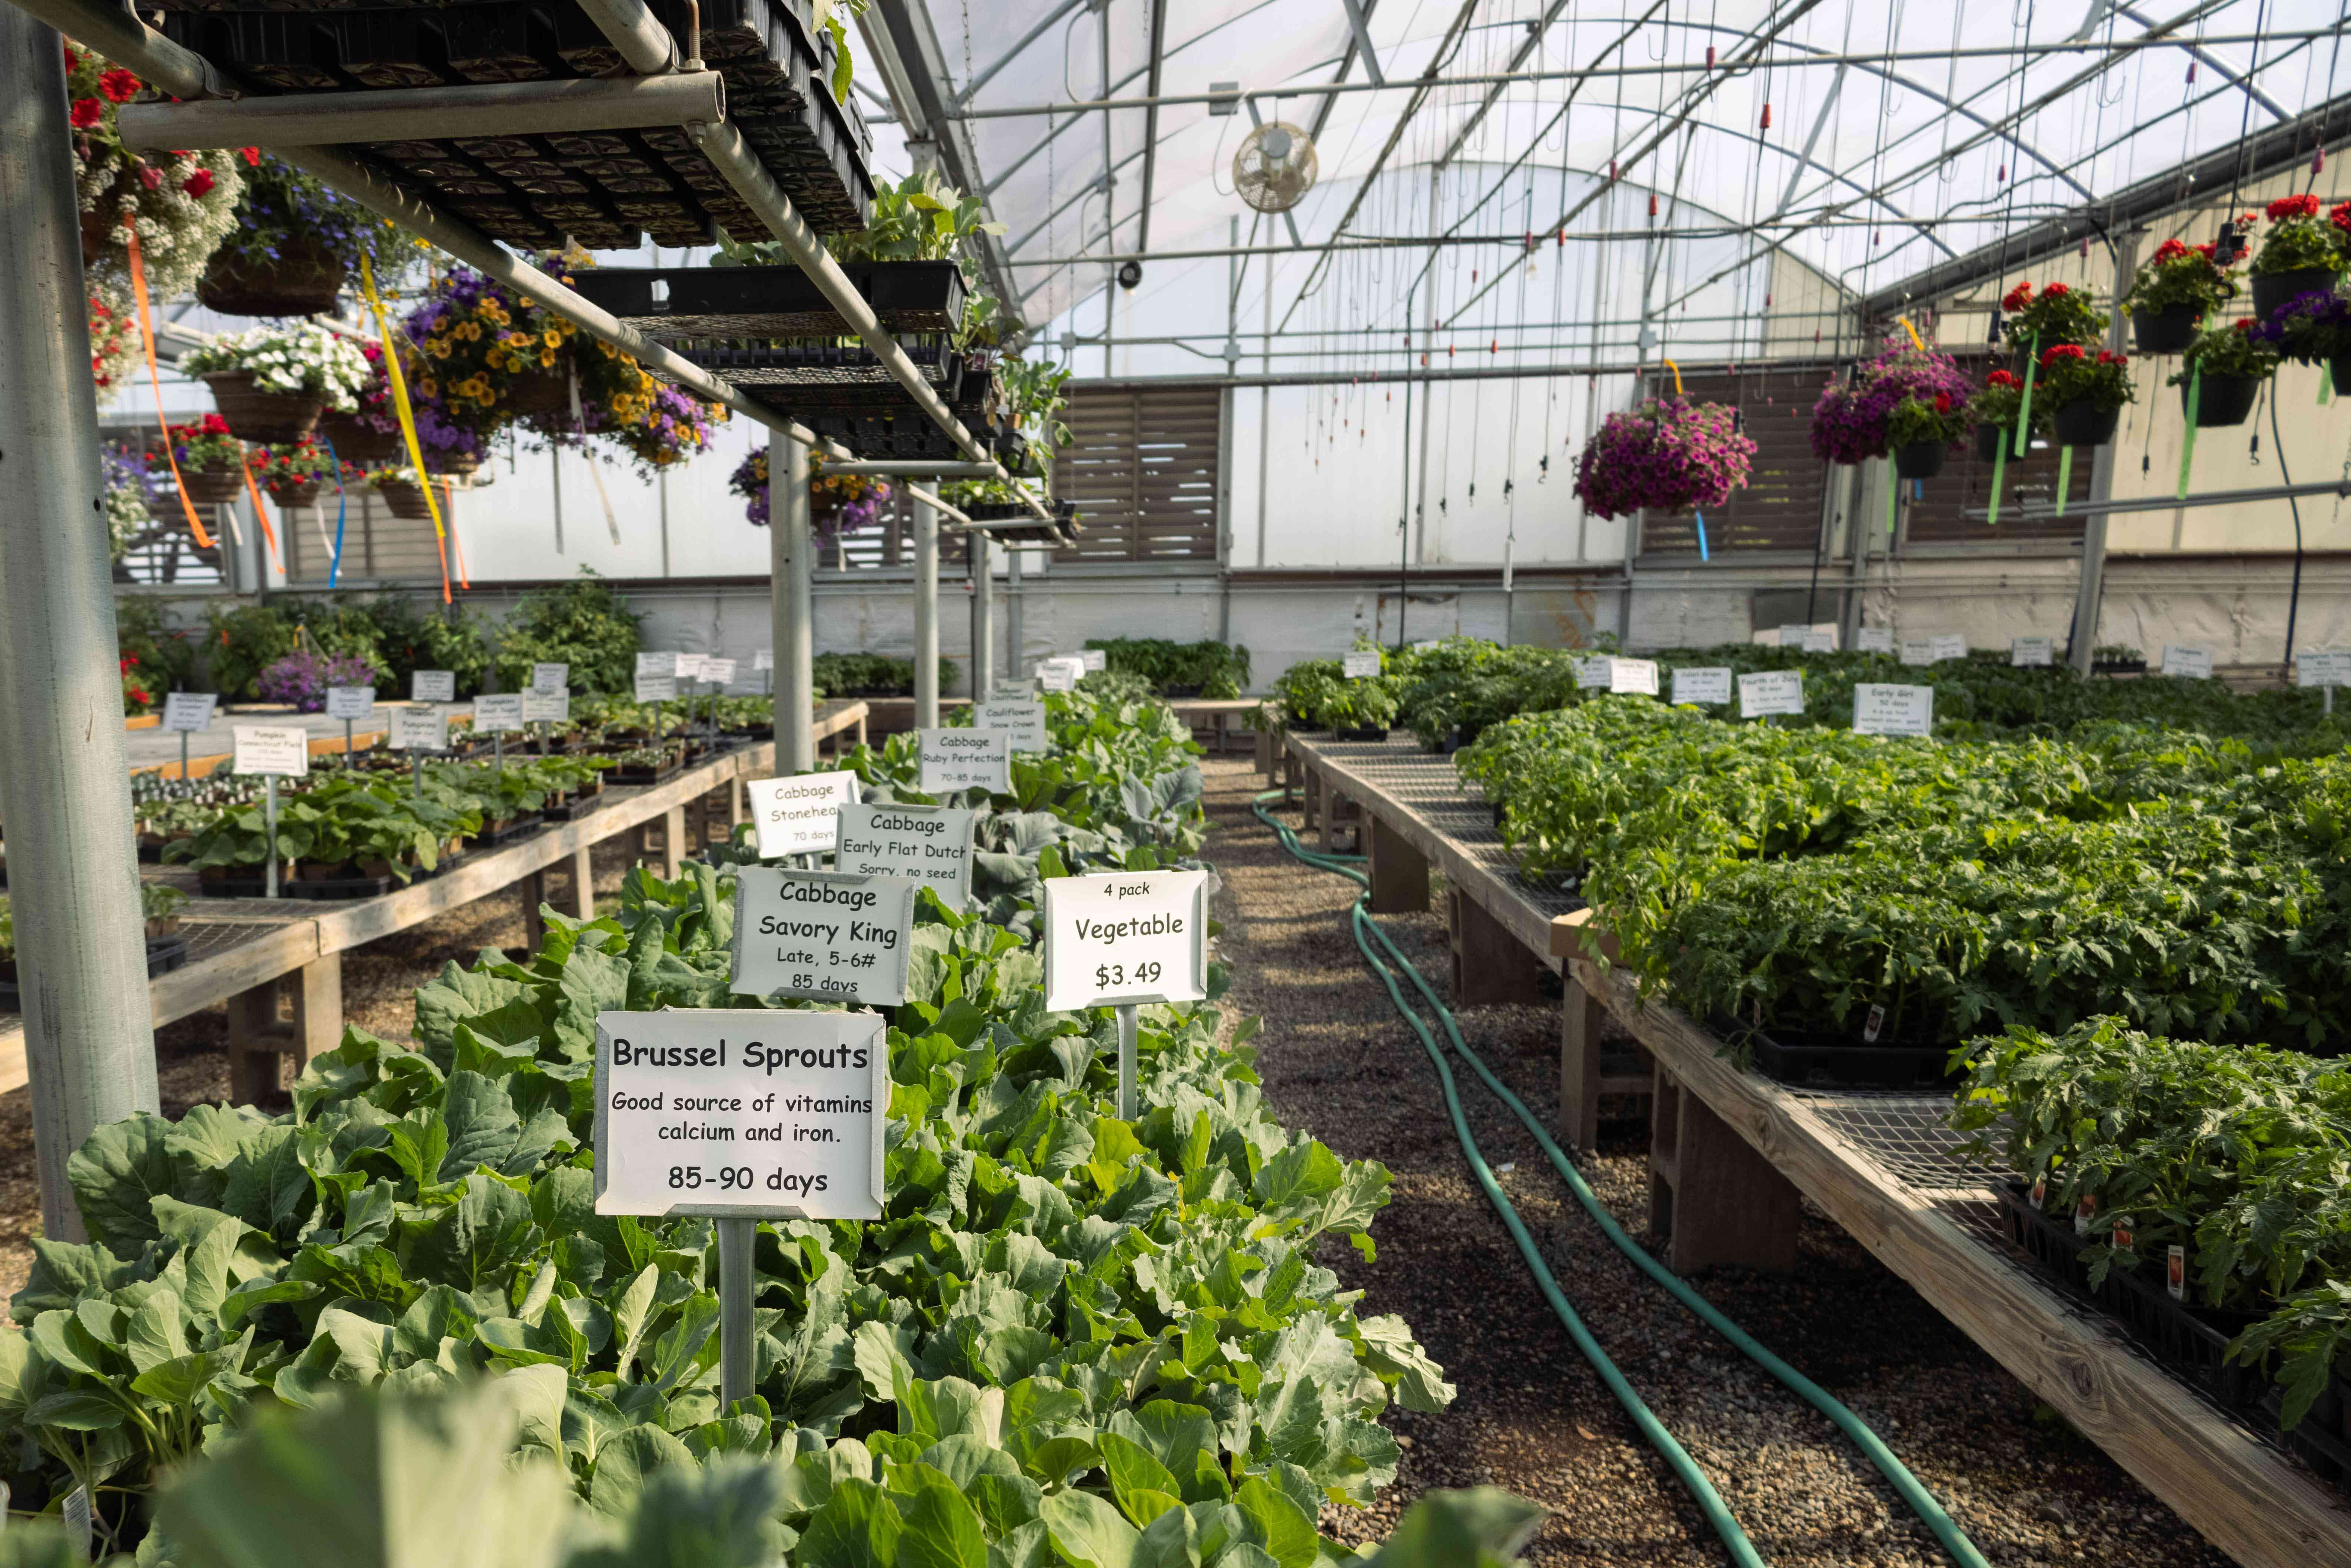 large open-air greenhouse with variety of hanging plants and edible starter plants for sale